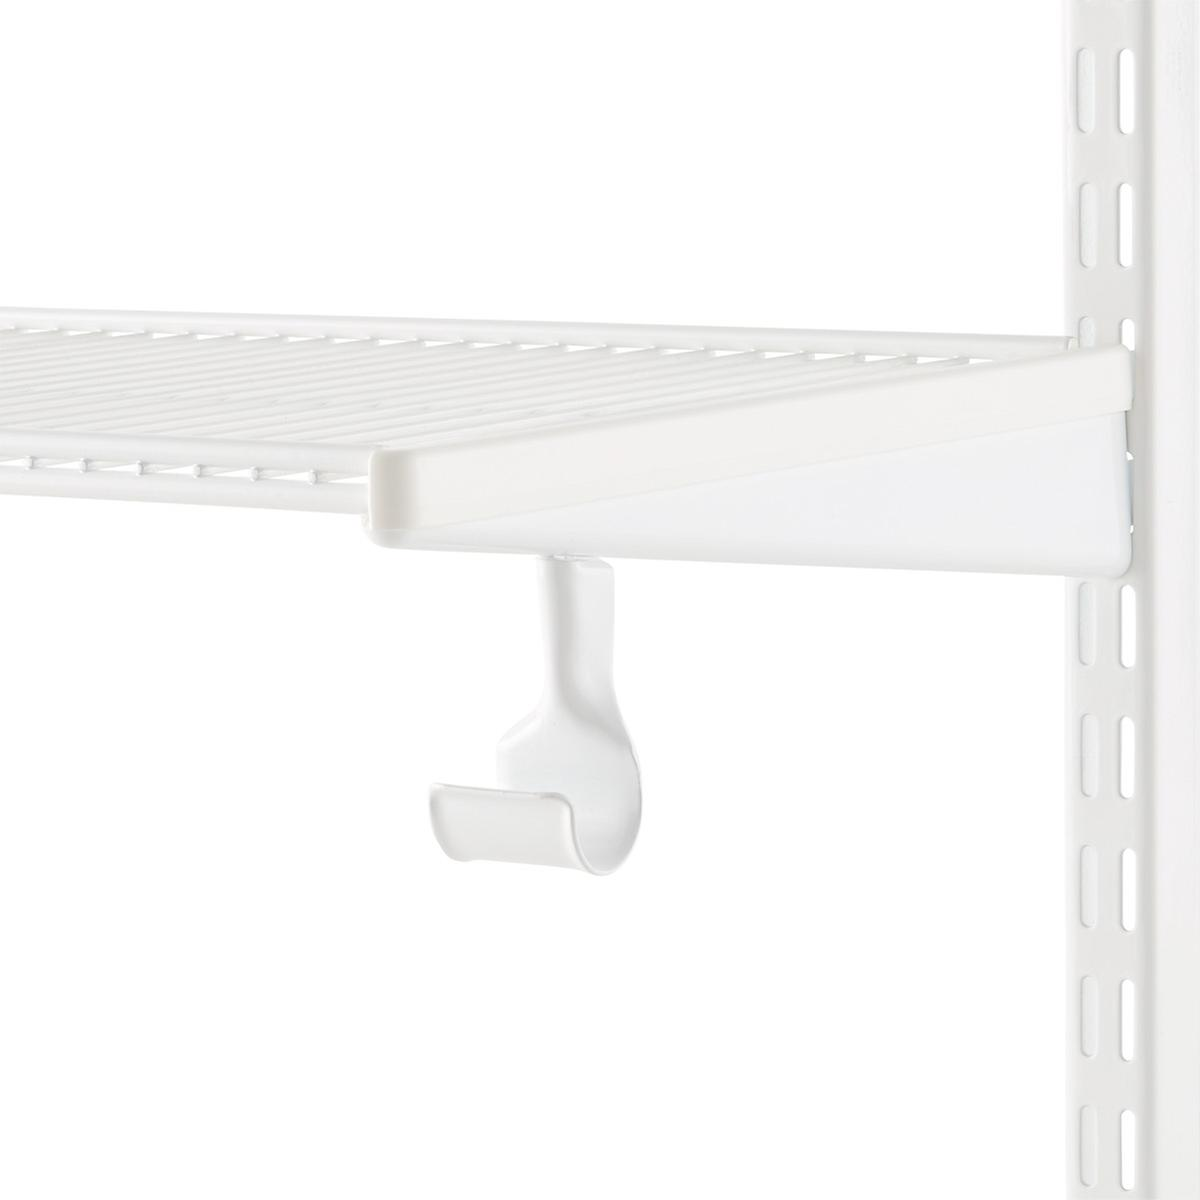 decorating stunning pole interesting c hanger design poles with closet steel material rod hangers brackets dazzling part stainless best great holders holder walmart